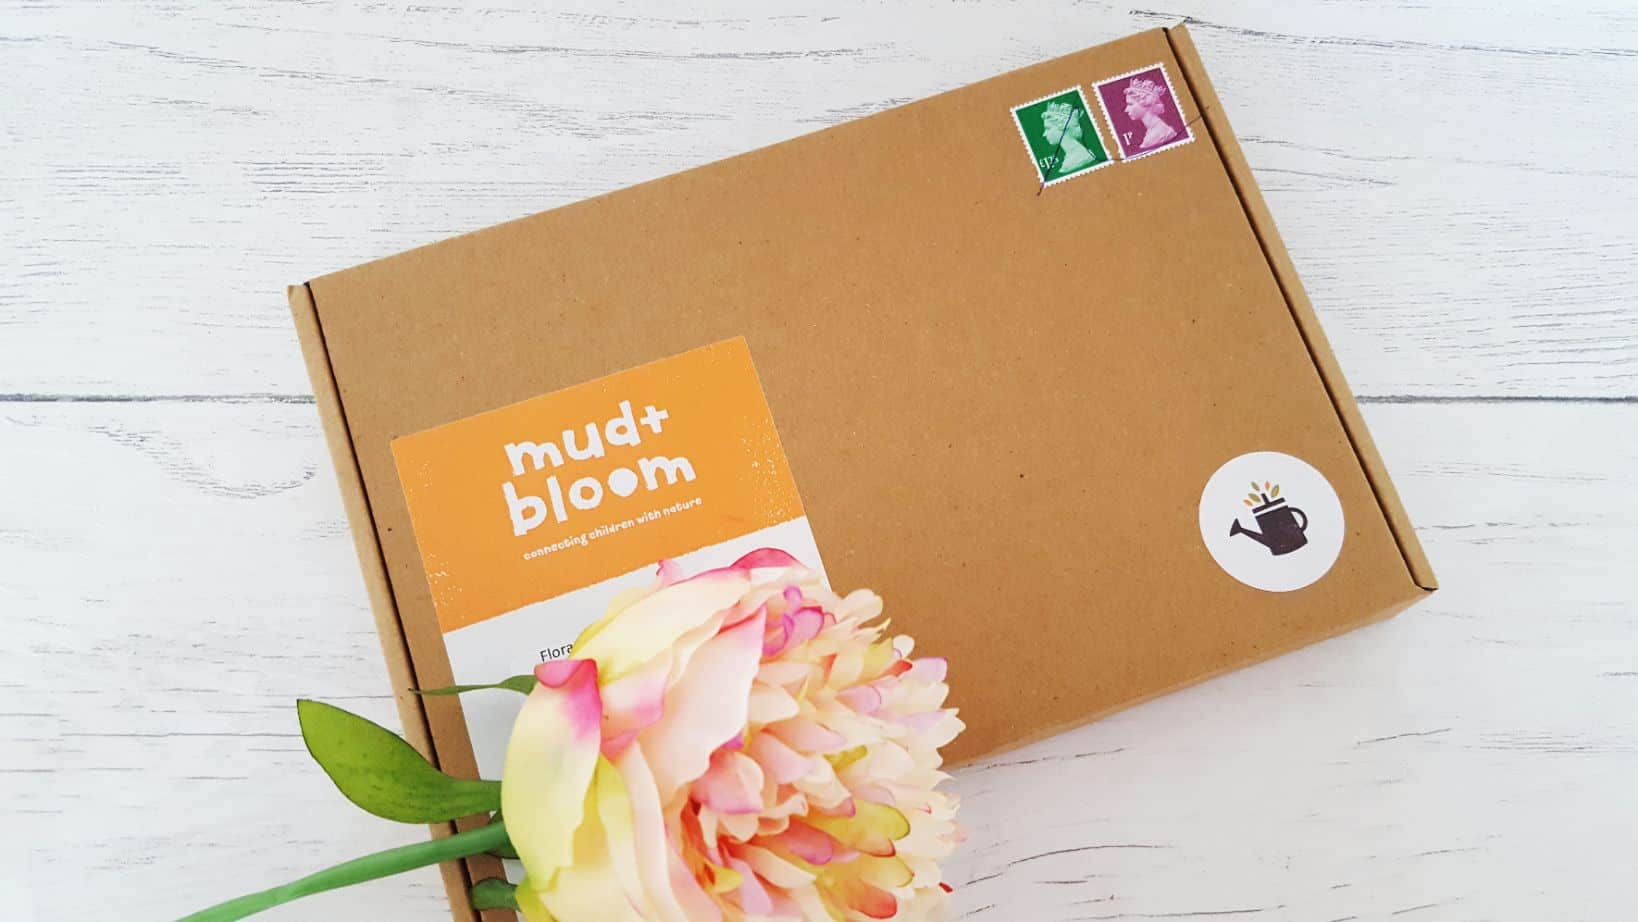 mud-and-bloom-april-review_www.lisasnotebook.com